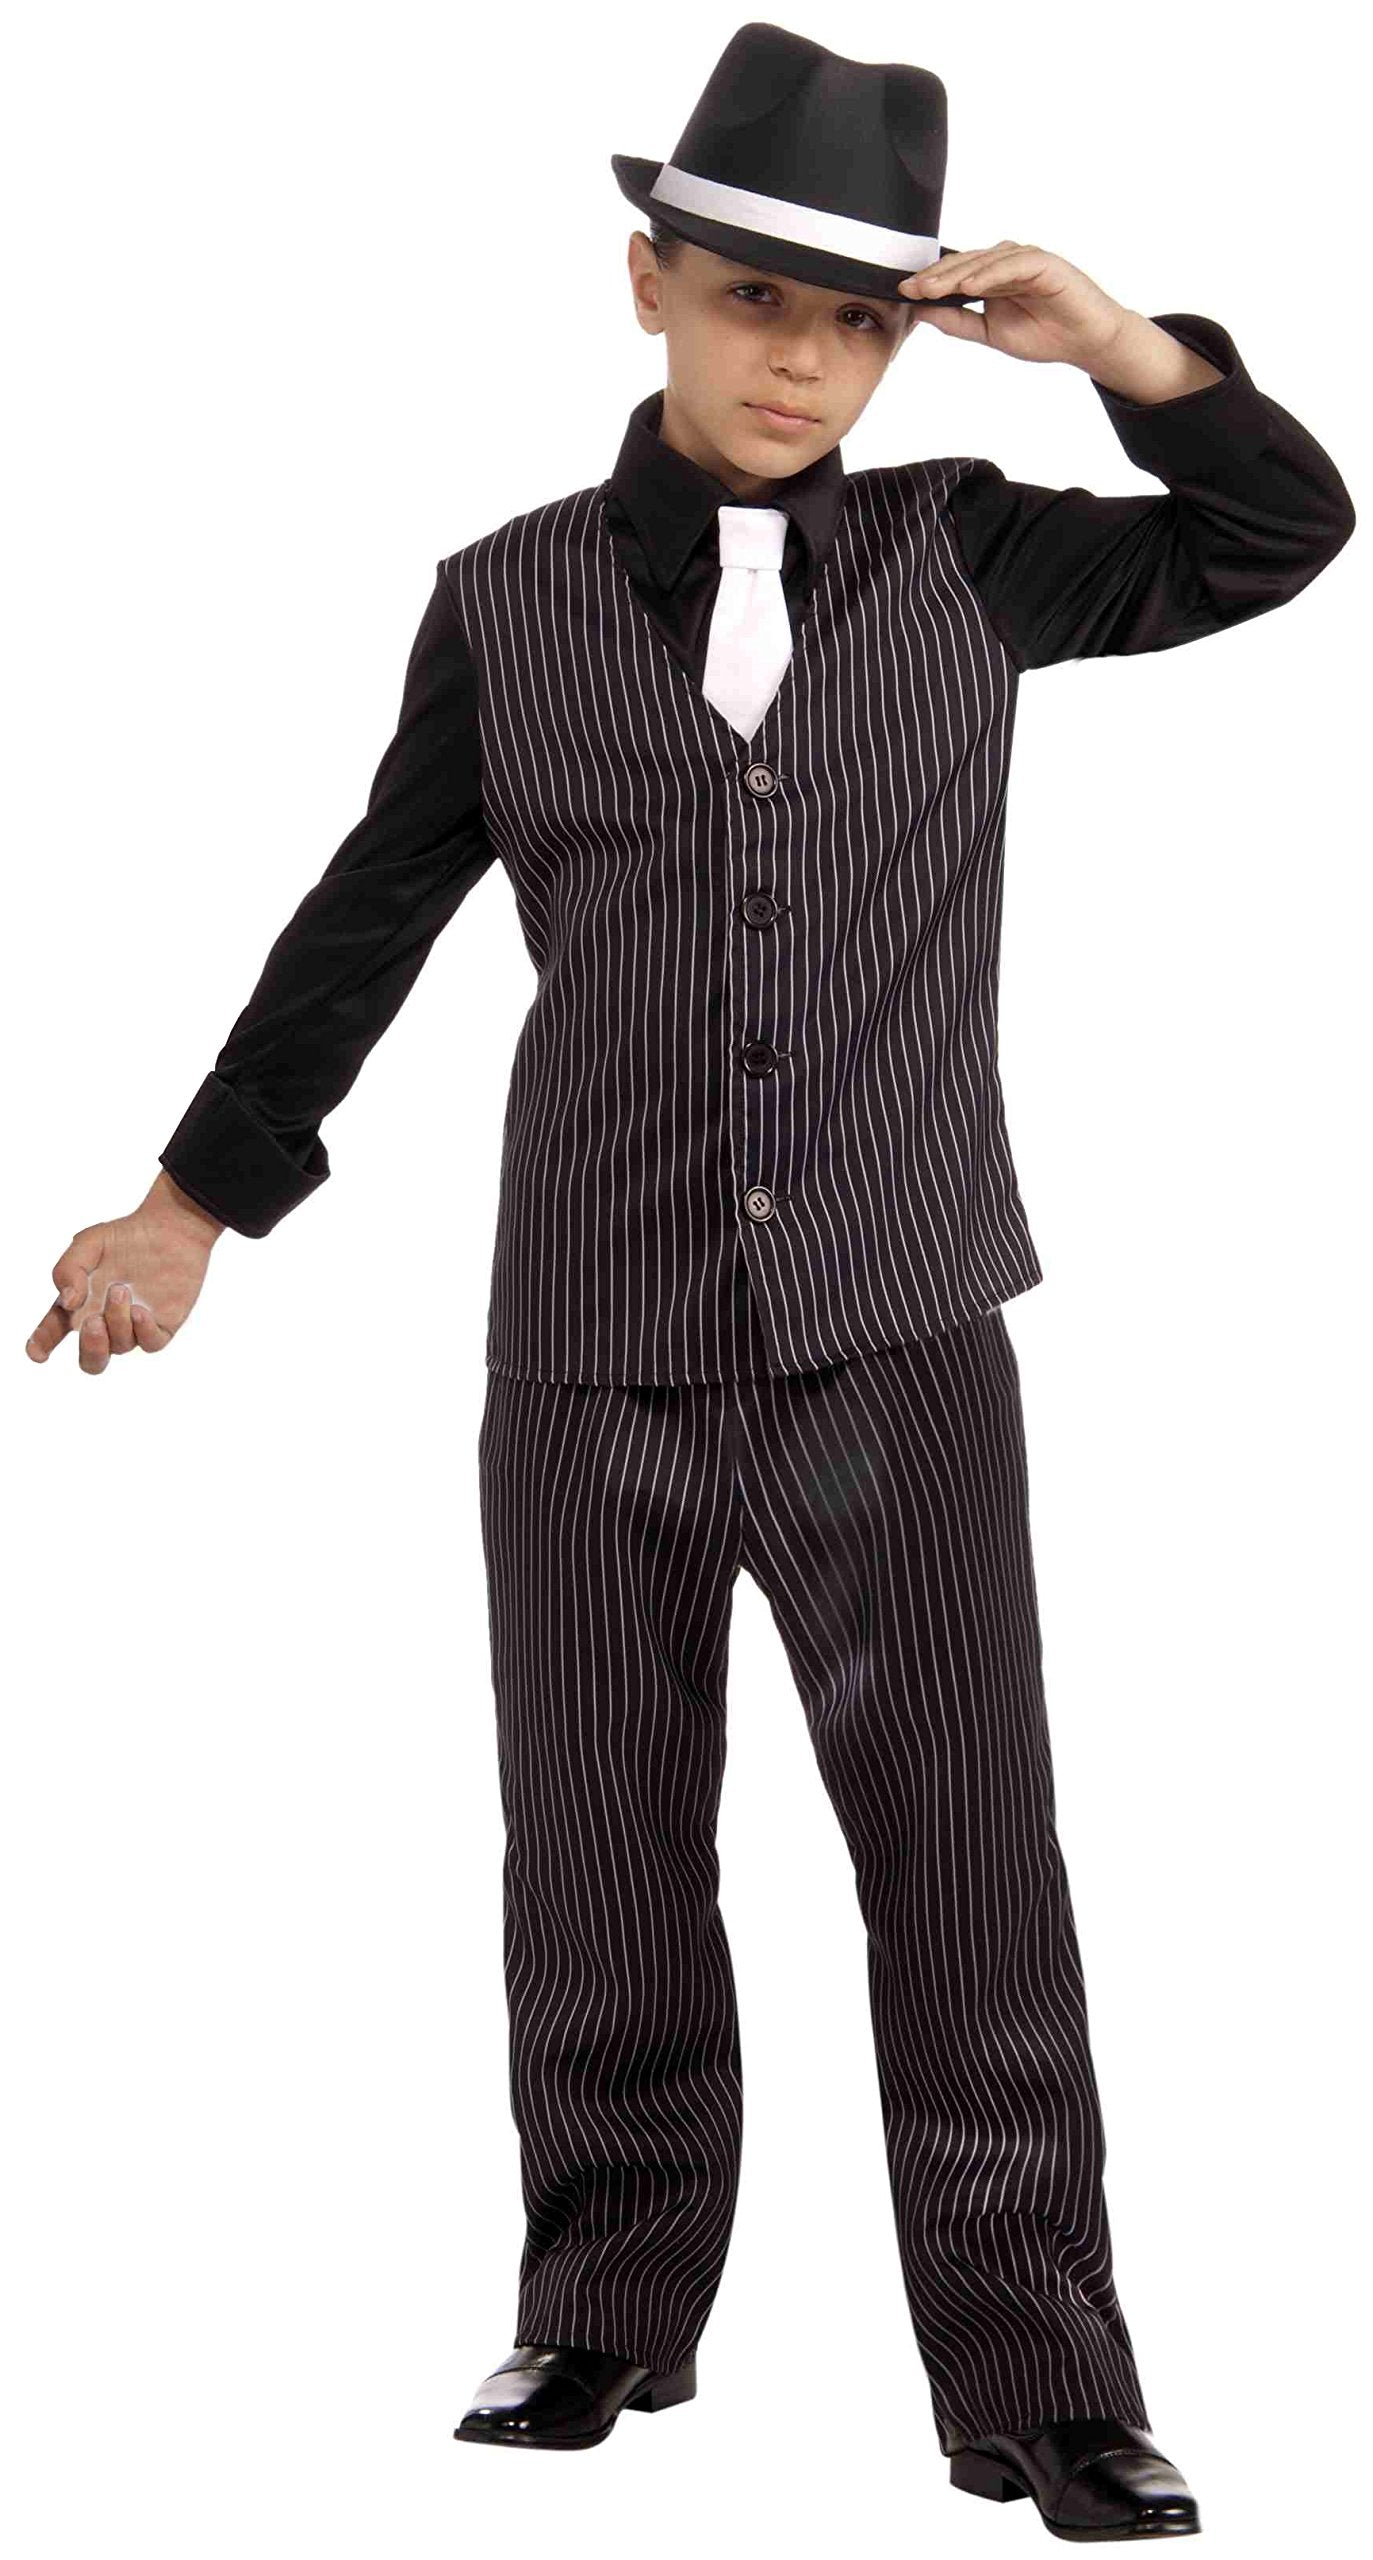 946865a4f1 Other Pretend Playing - Forum Novelties 20 s Lil  Gangster Child ...